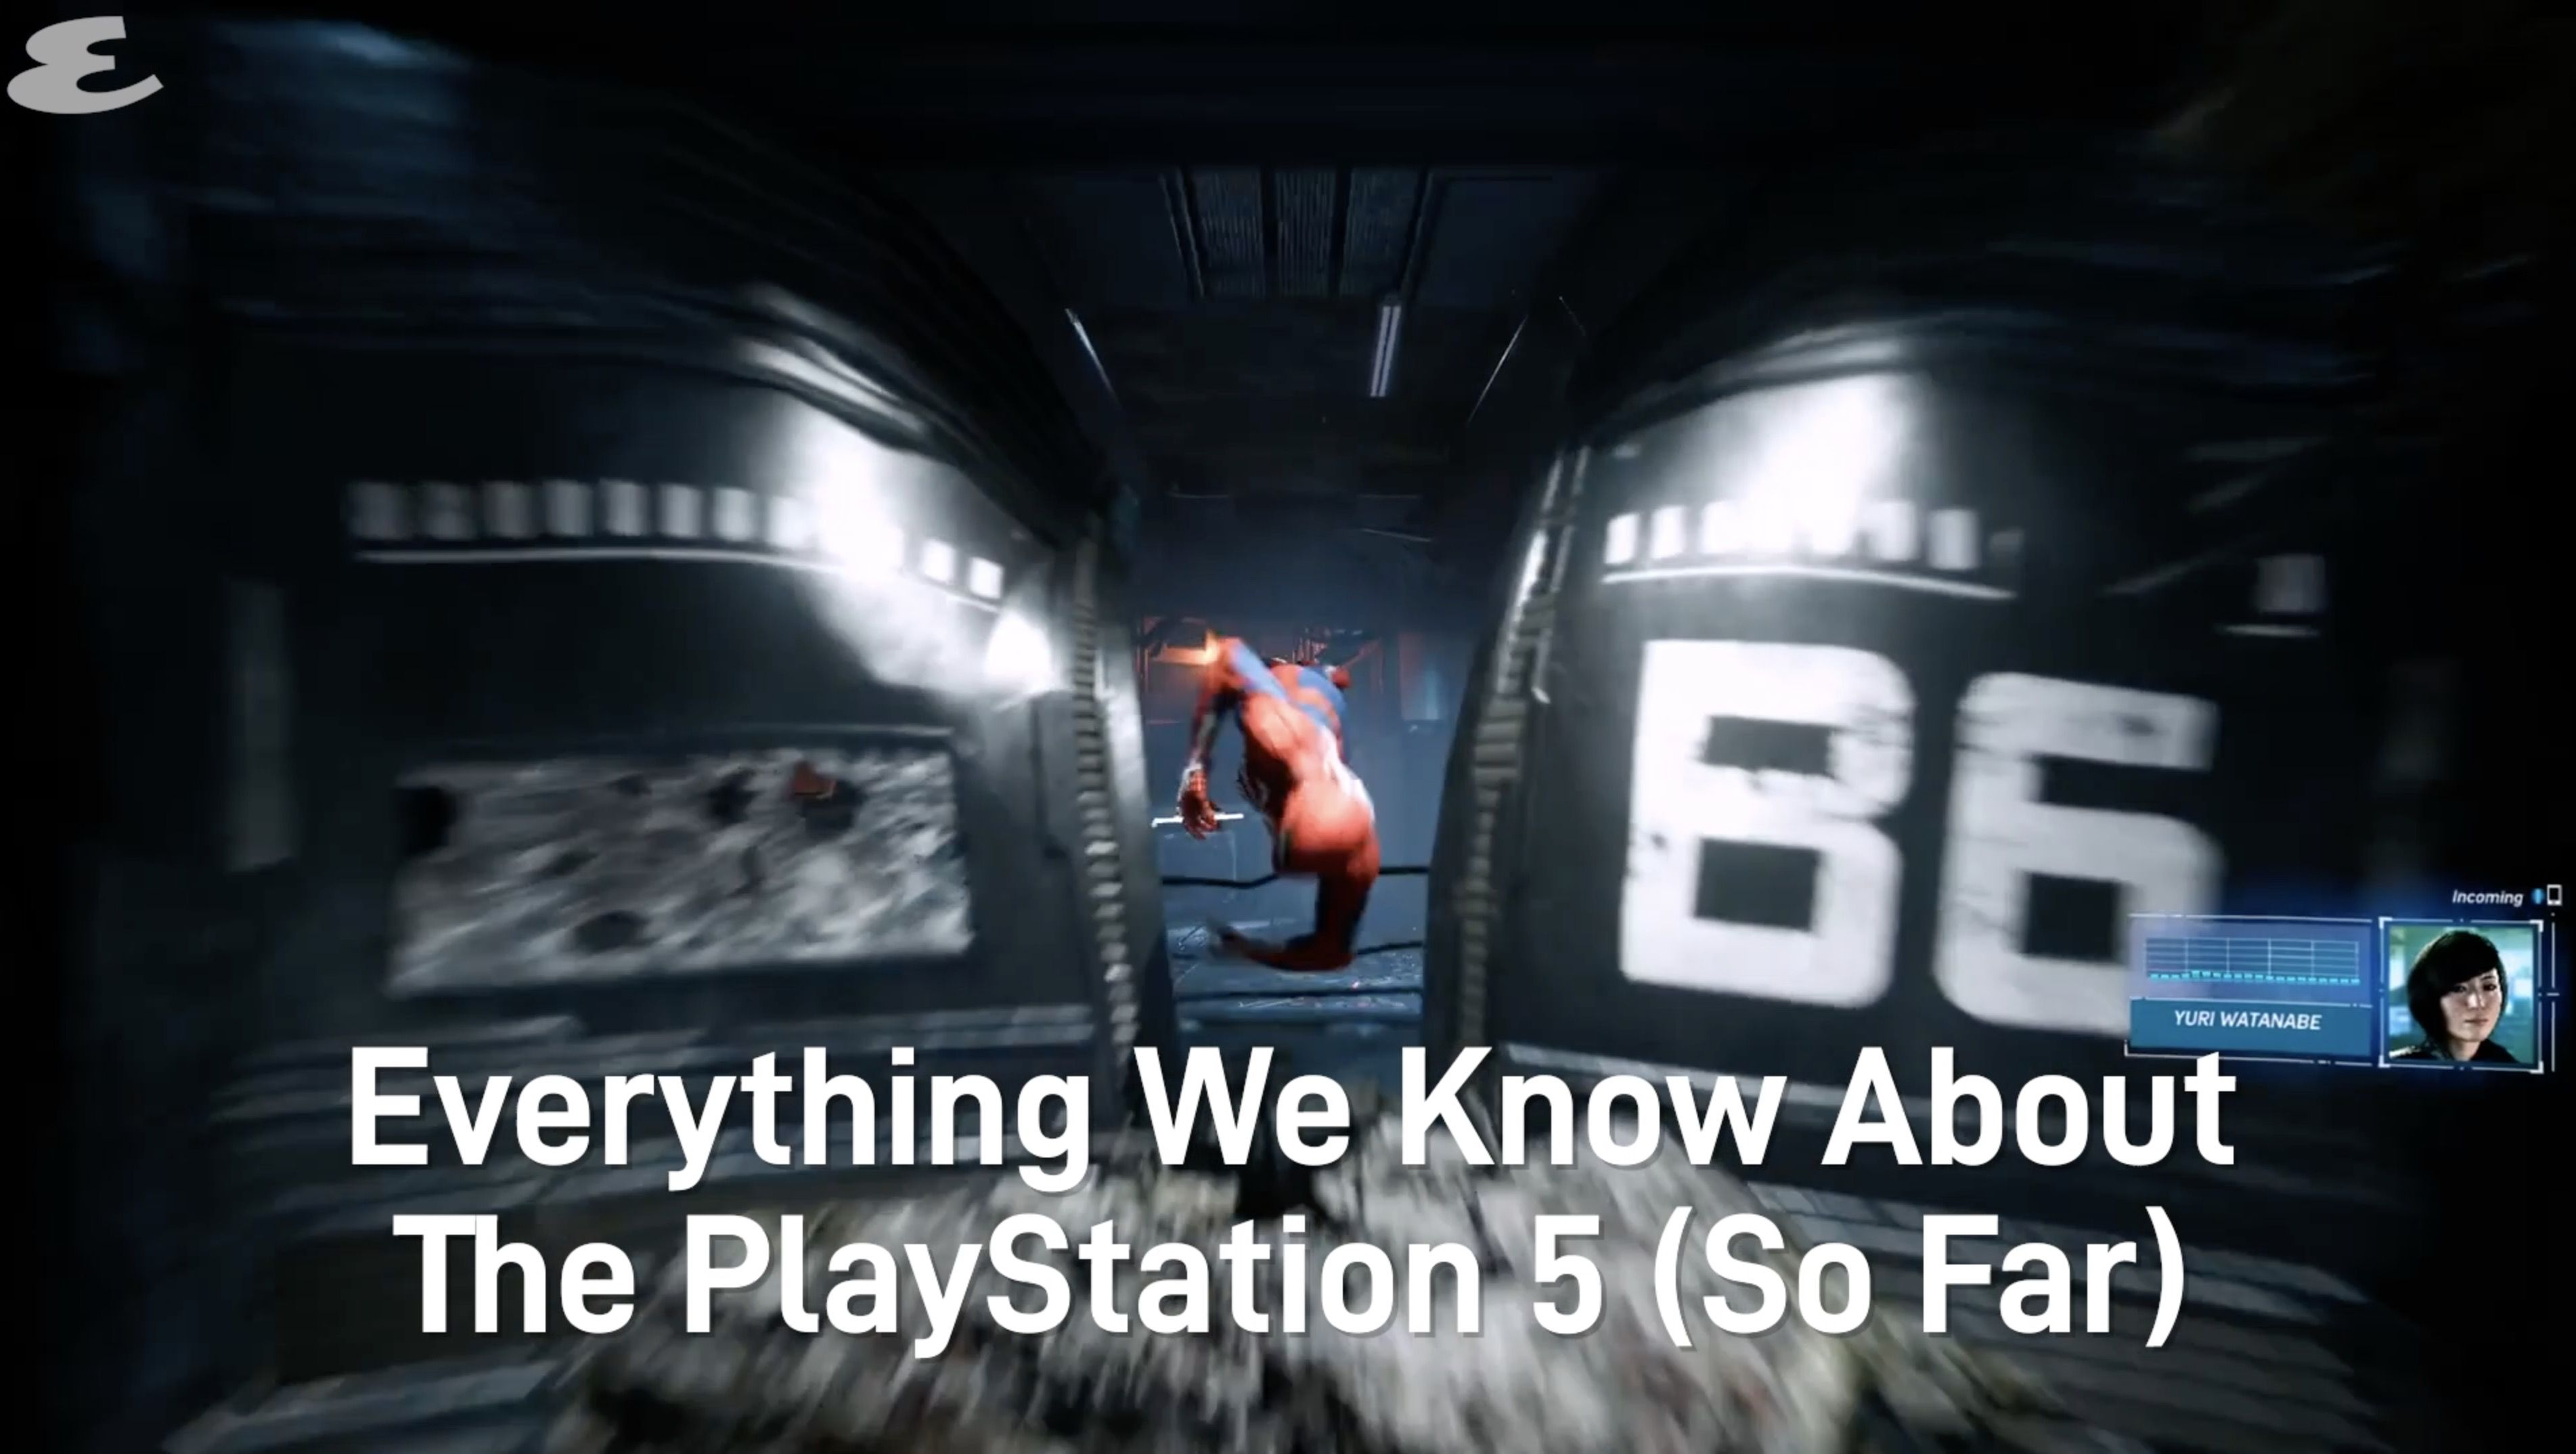 We Just Got A Huge Hint To What The First Big PS5 Game Will Be